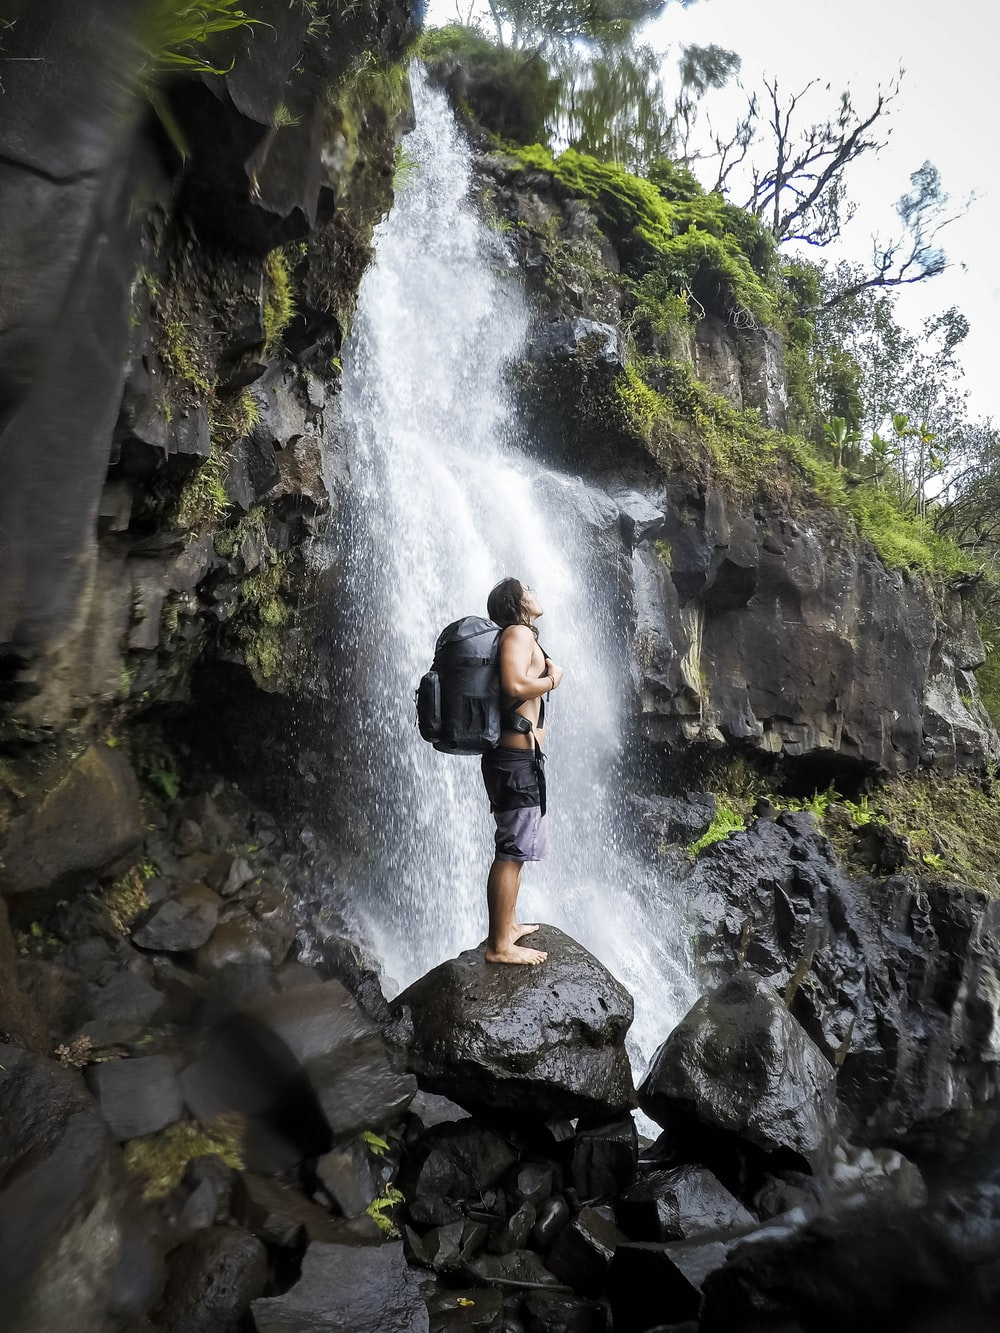 man carrying rucksack backpack standing on stone on front of waterfalls